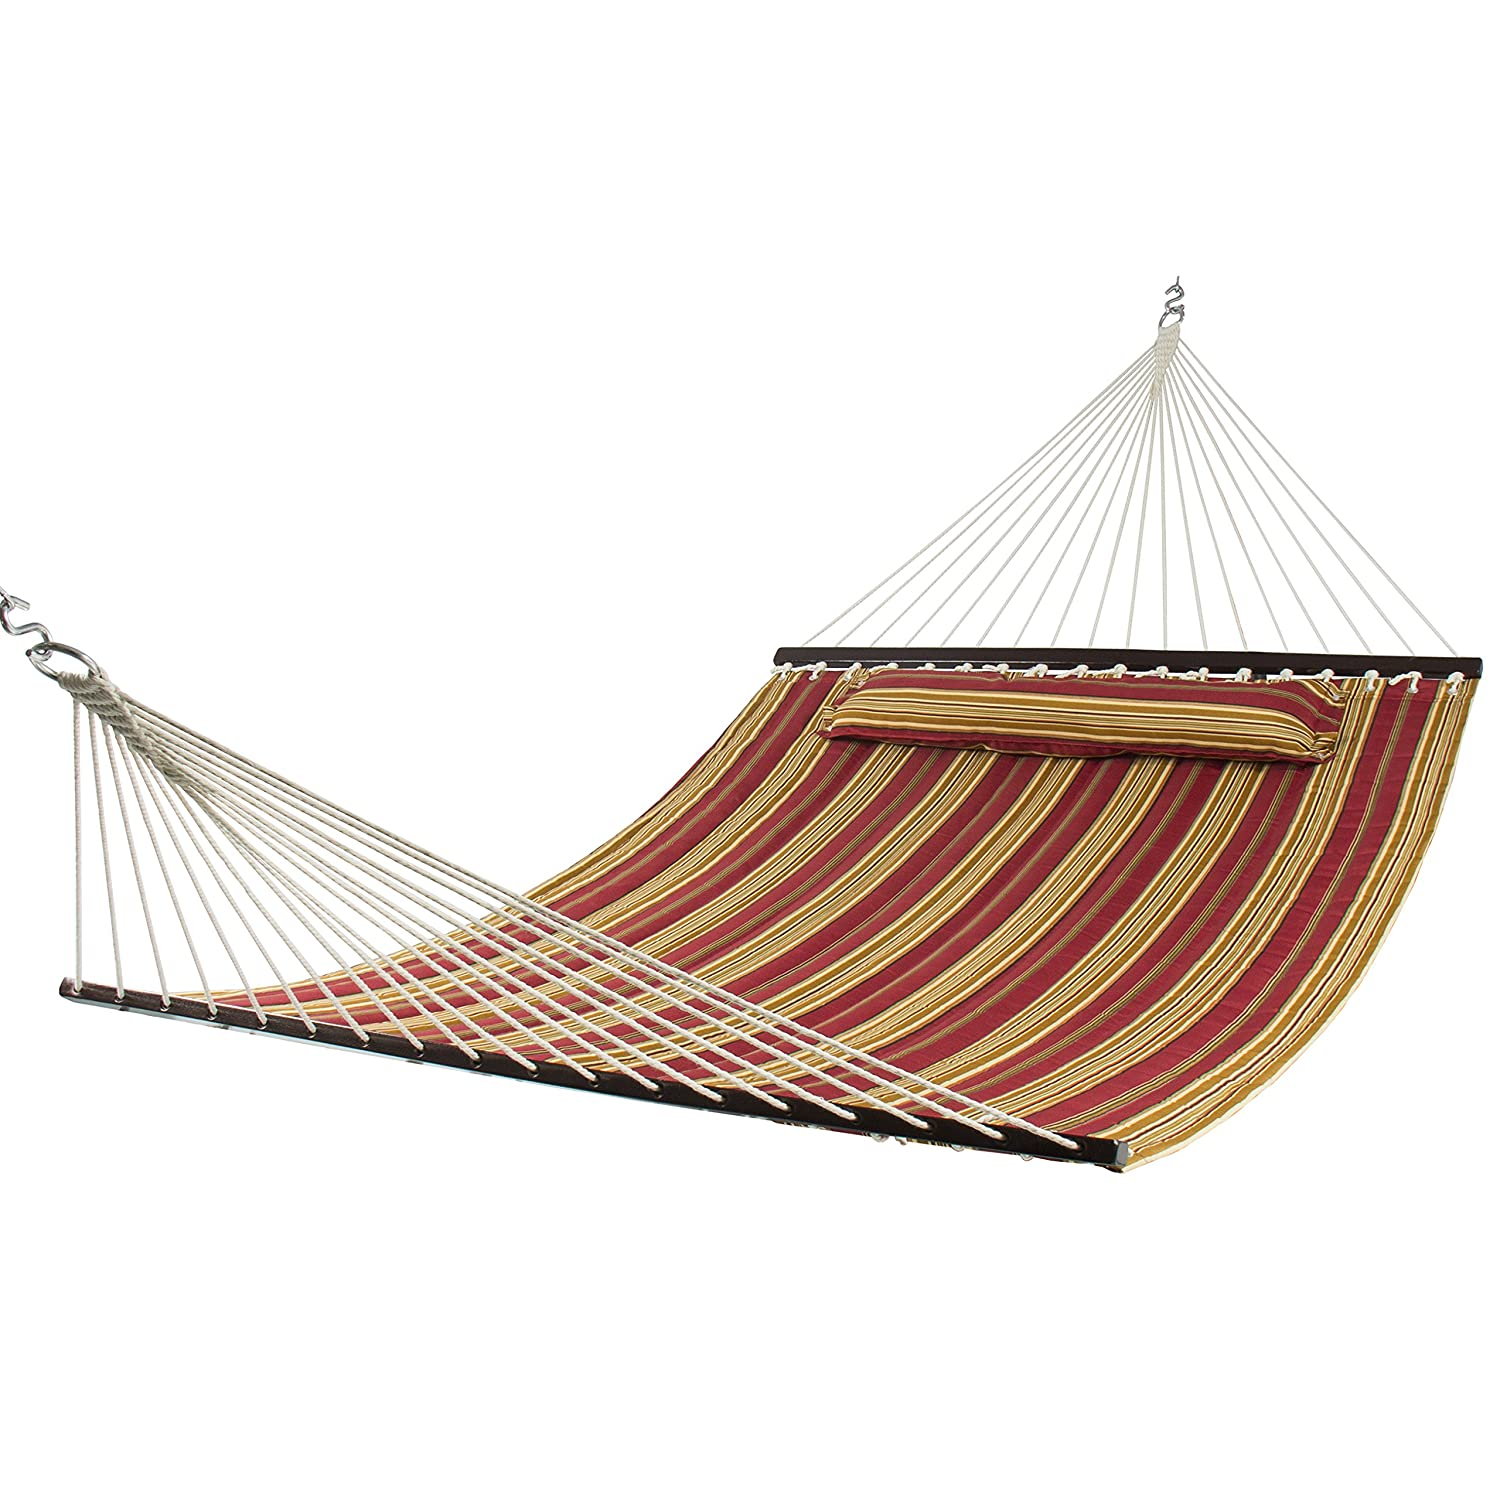 Heavy Duty Hammocks For Large People Up To Lbs